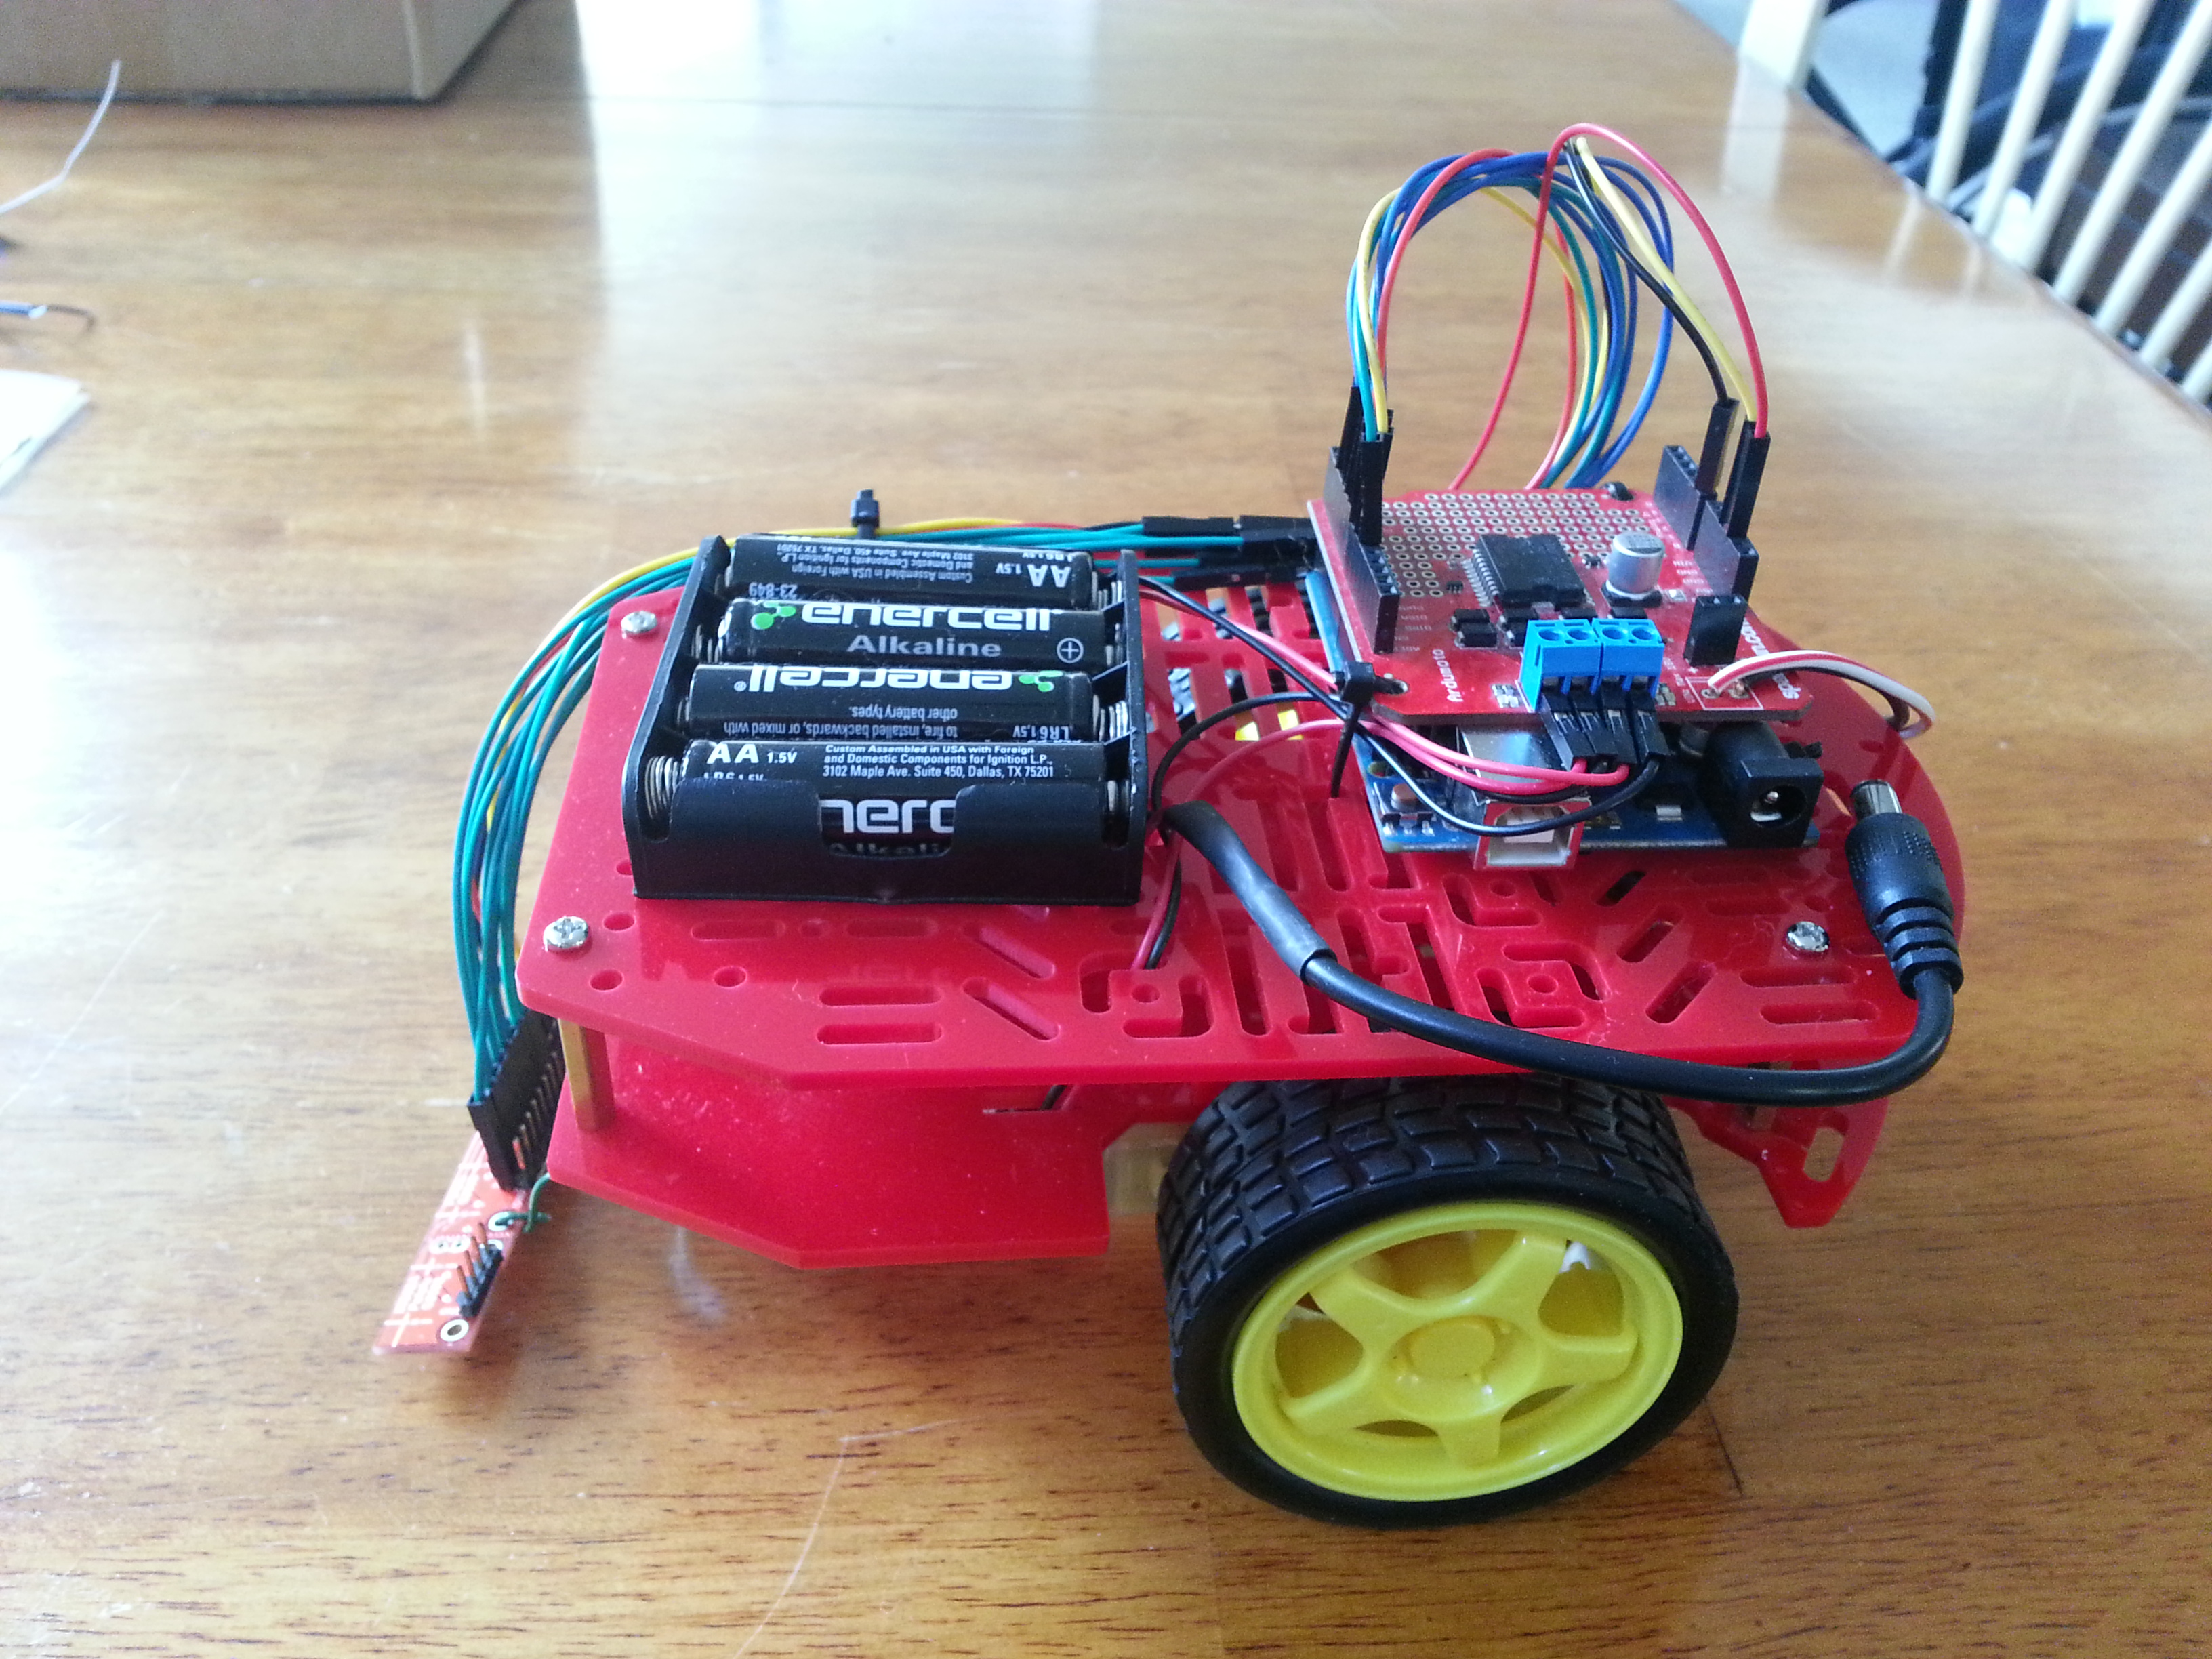 Basic Line following Robot with Arduino